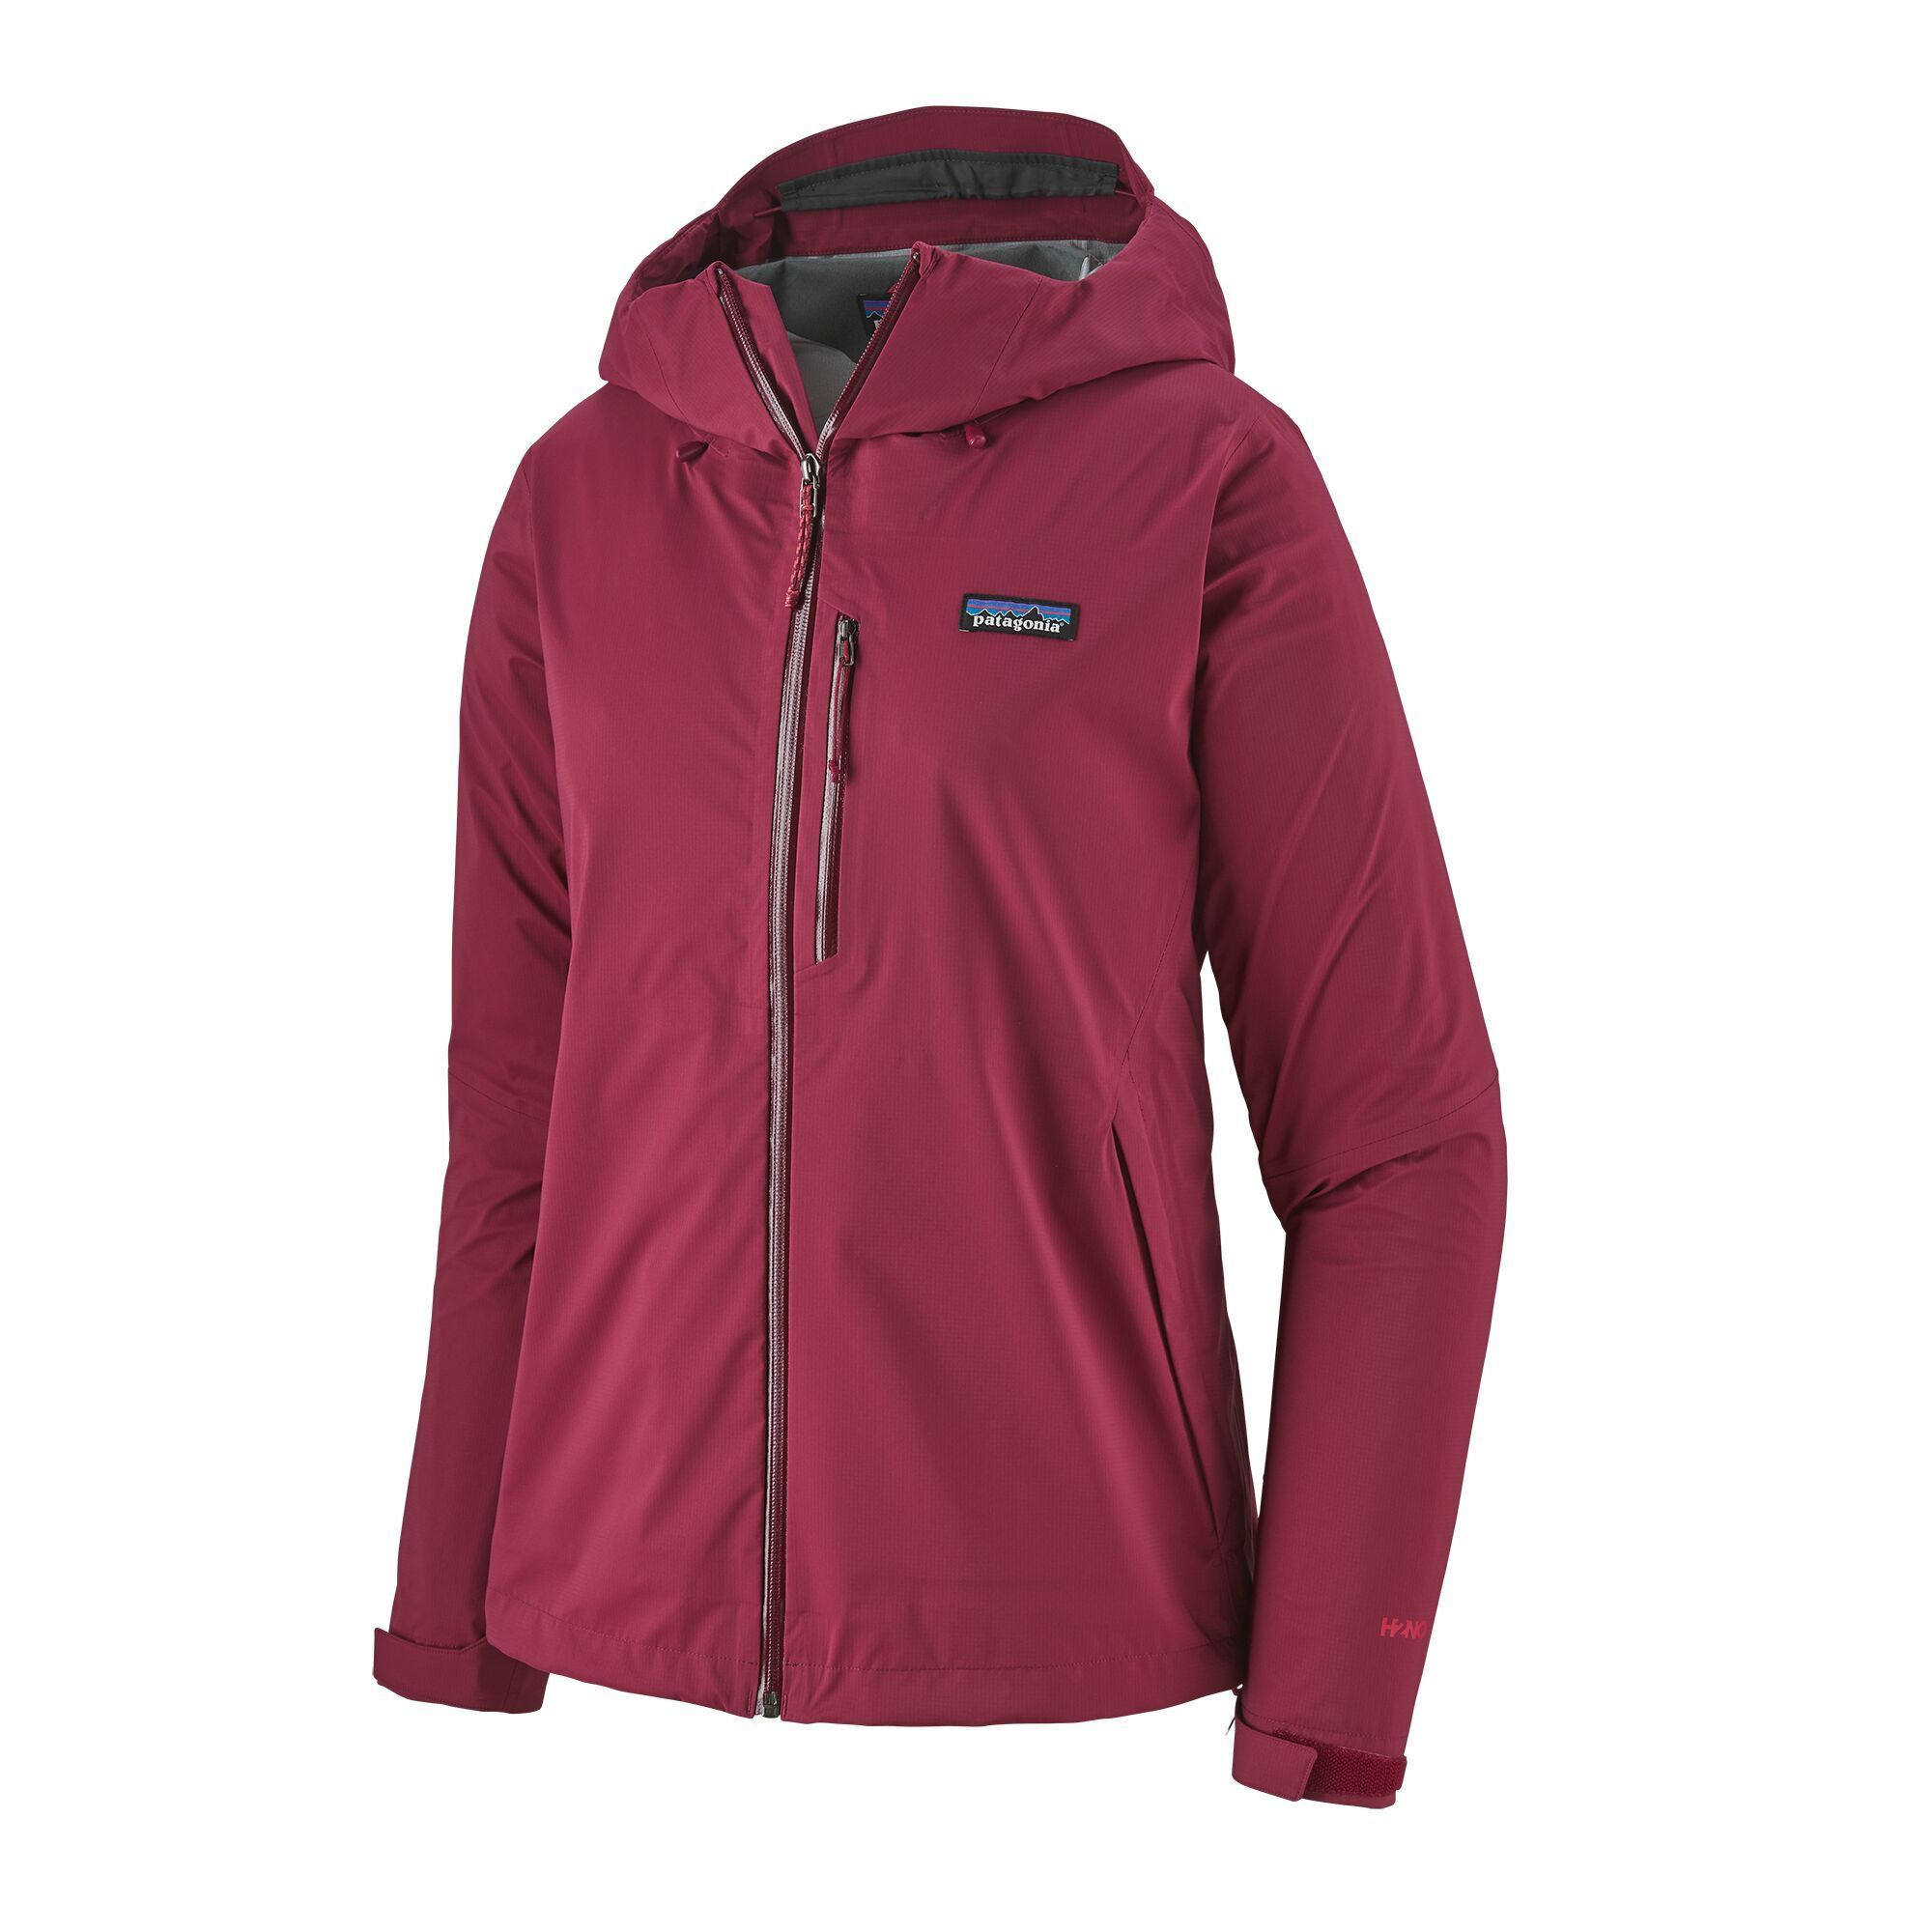 Patagonia - W's Rainshadow Jacket - 100% Recycled Nylon - Weekendbee - sustainable sportswear